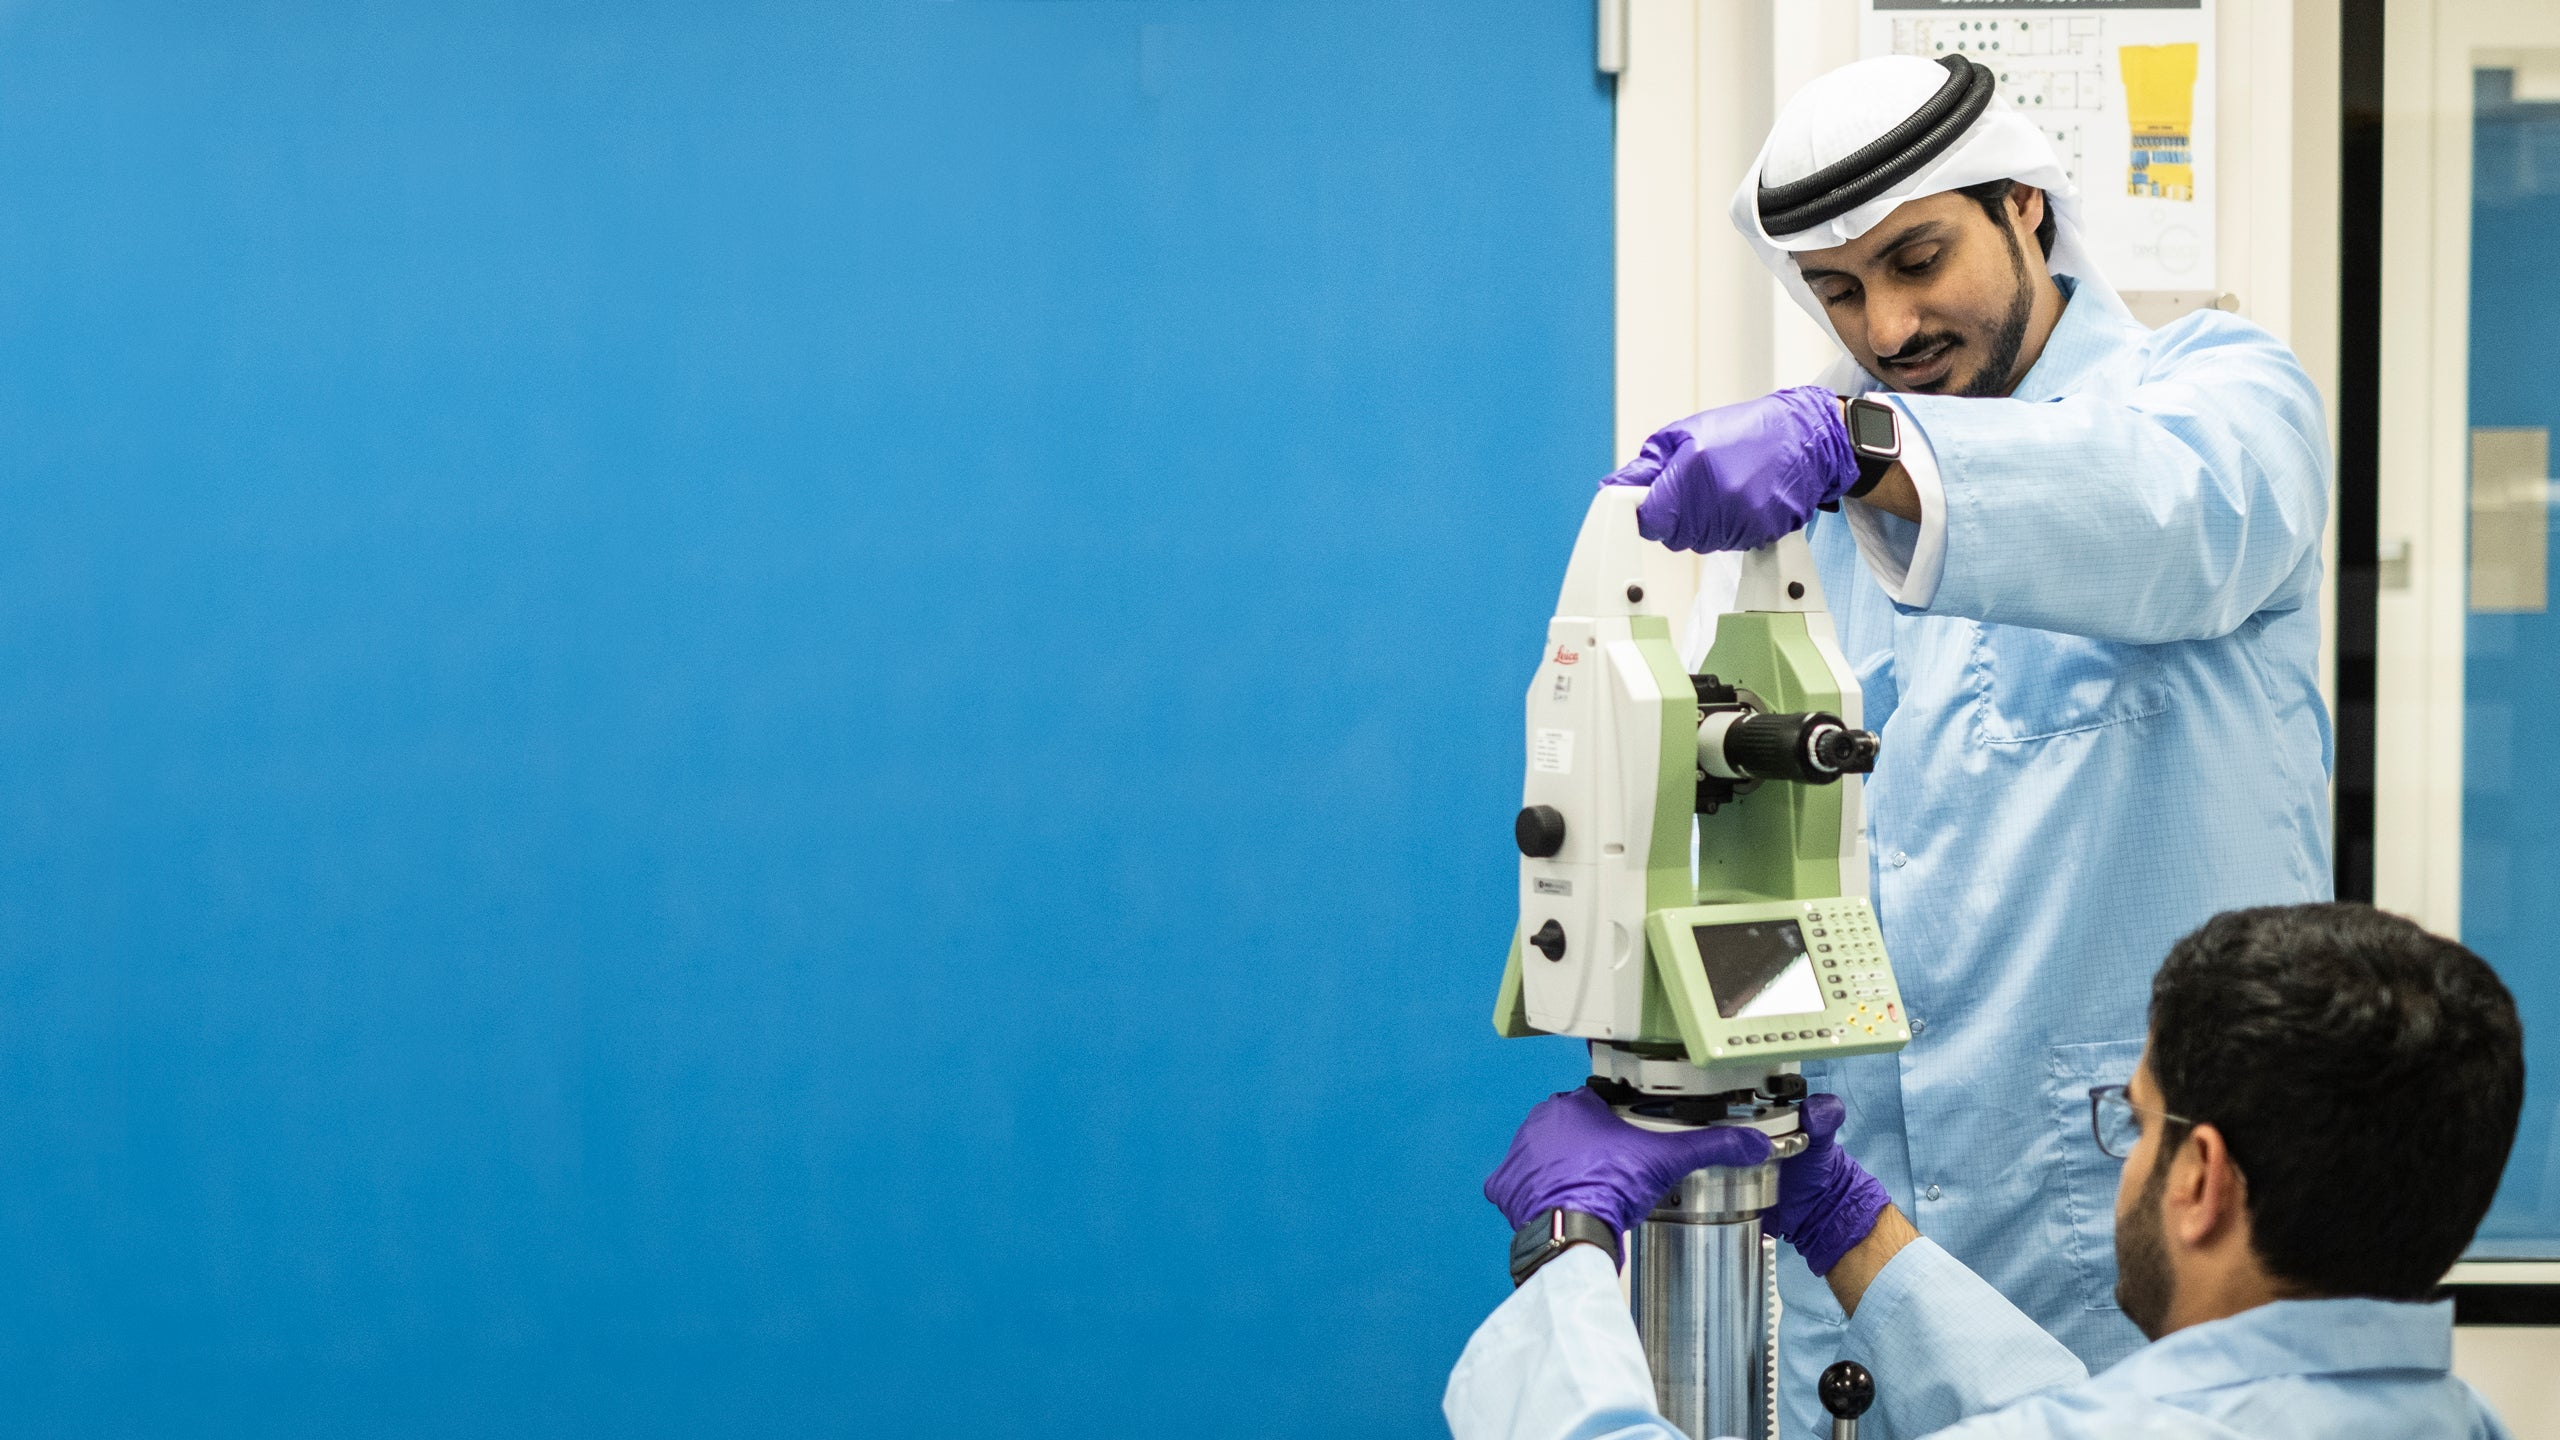 Muna al Hammadi watches Ali al Suwaidi and Mahmood Alawadhi adjust a measuring device in a lab